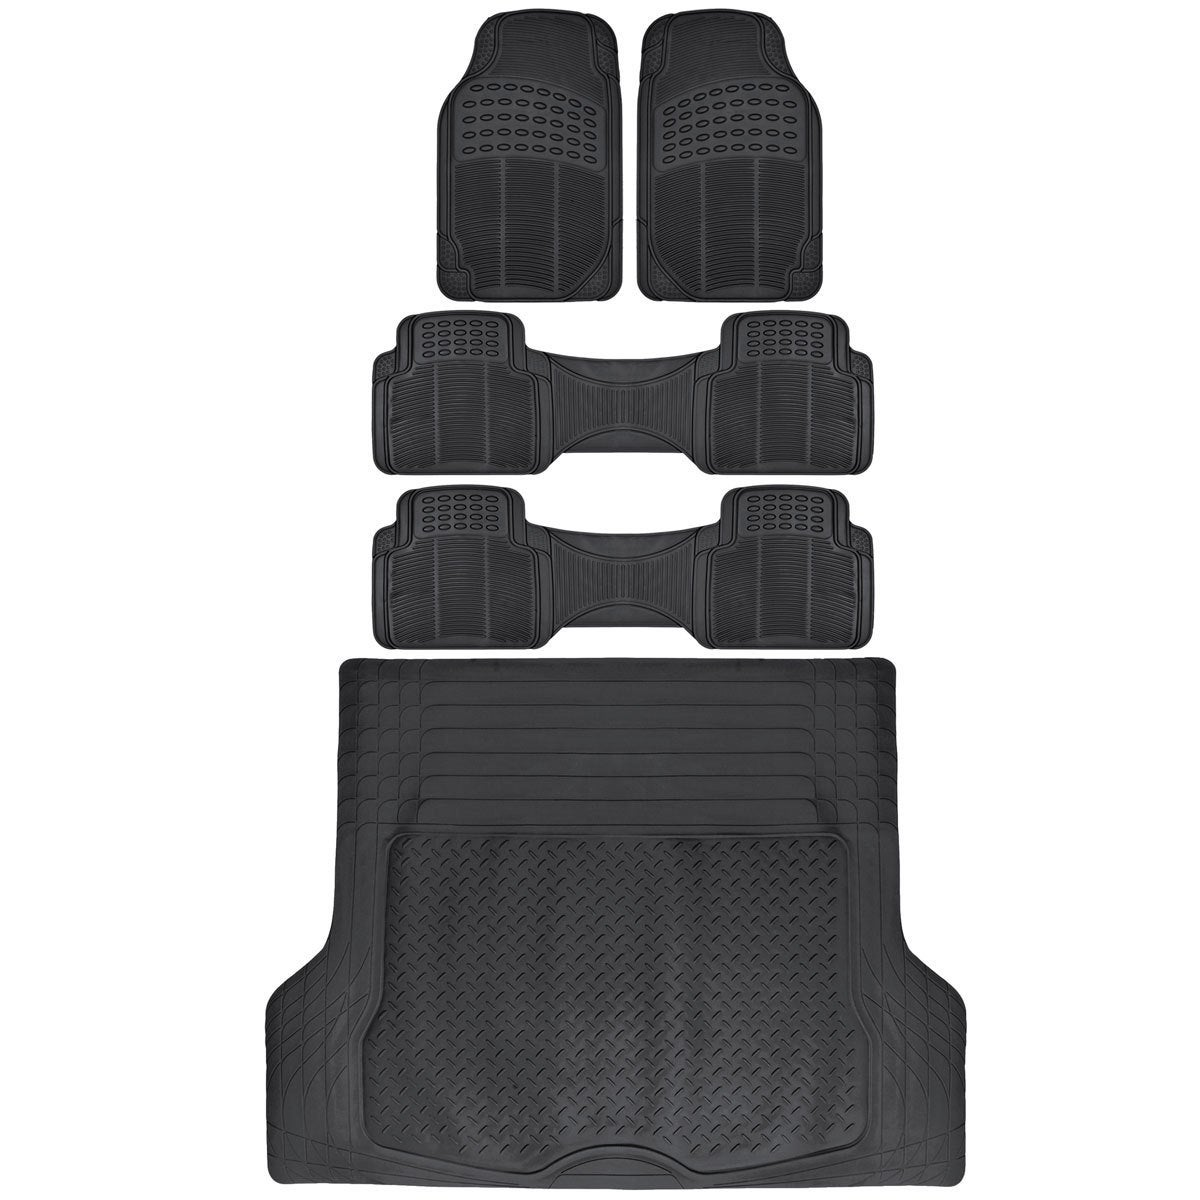 Bdk 3 Row Heavy Duty Trimmable Car Floor Mats For Suv Van With Cargo Liner 5 Pieces